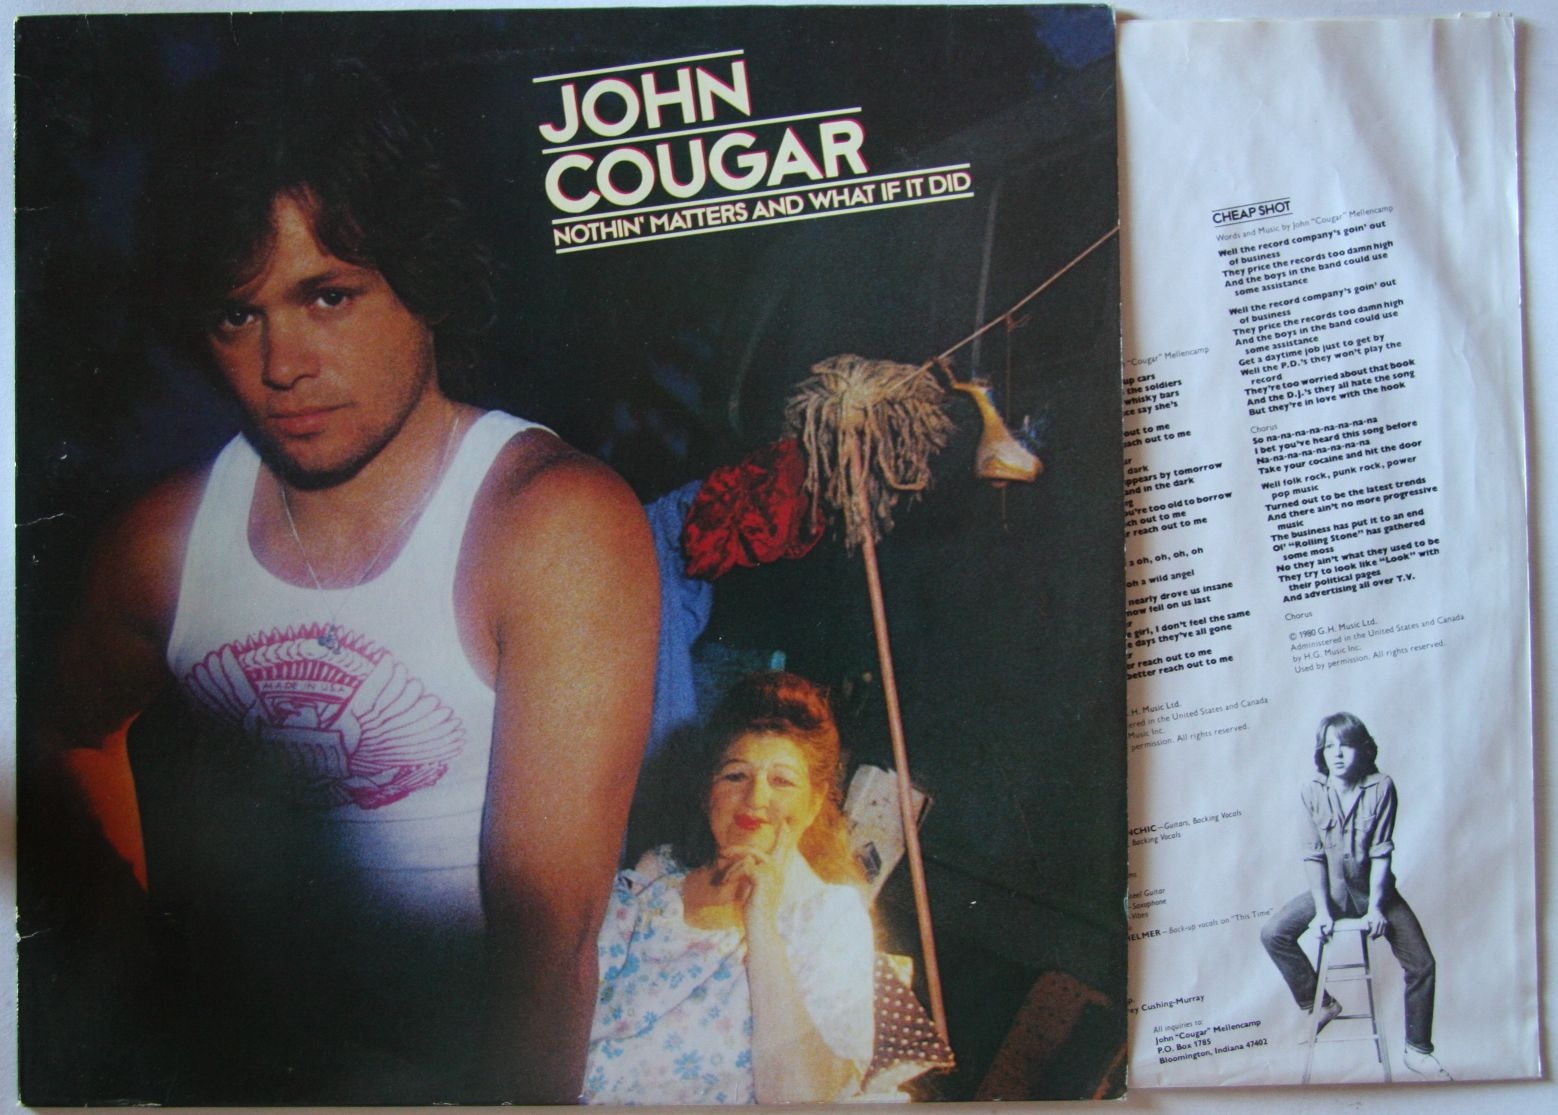 John Cougar - Nothin' Matters And What If I Do